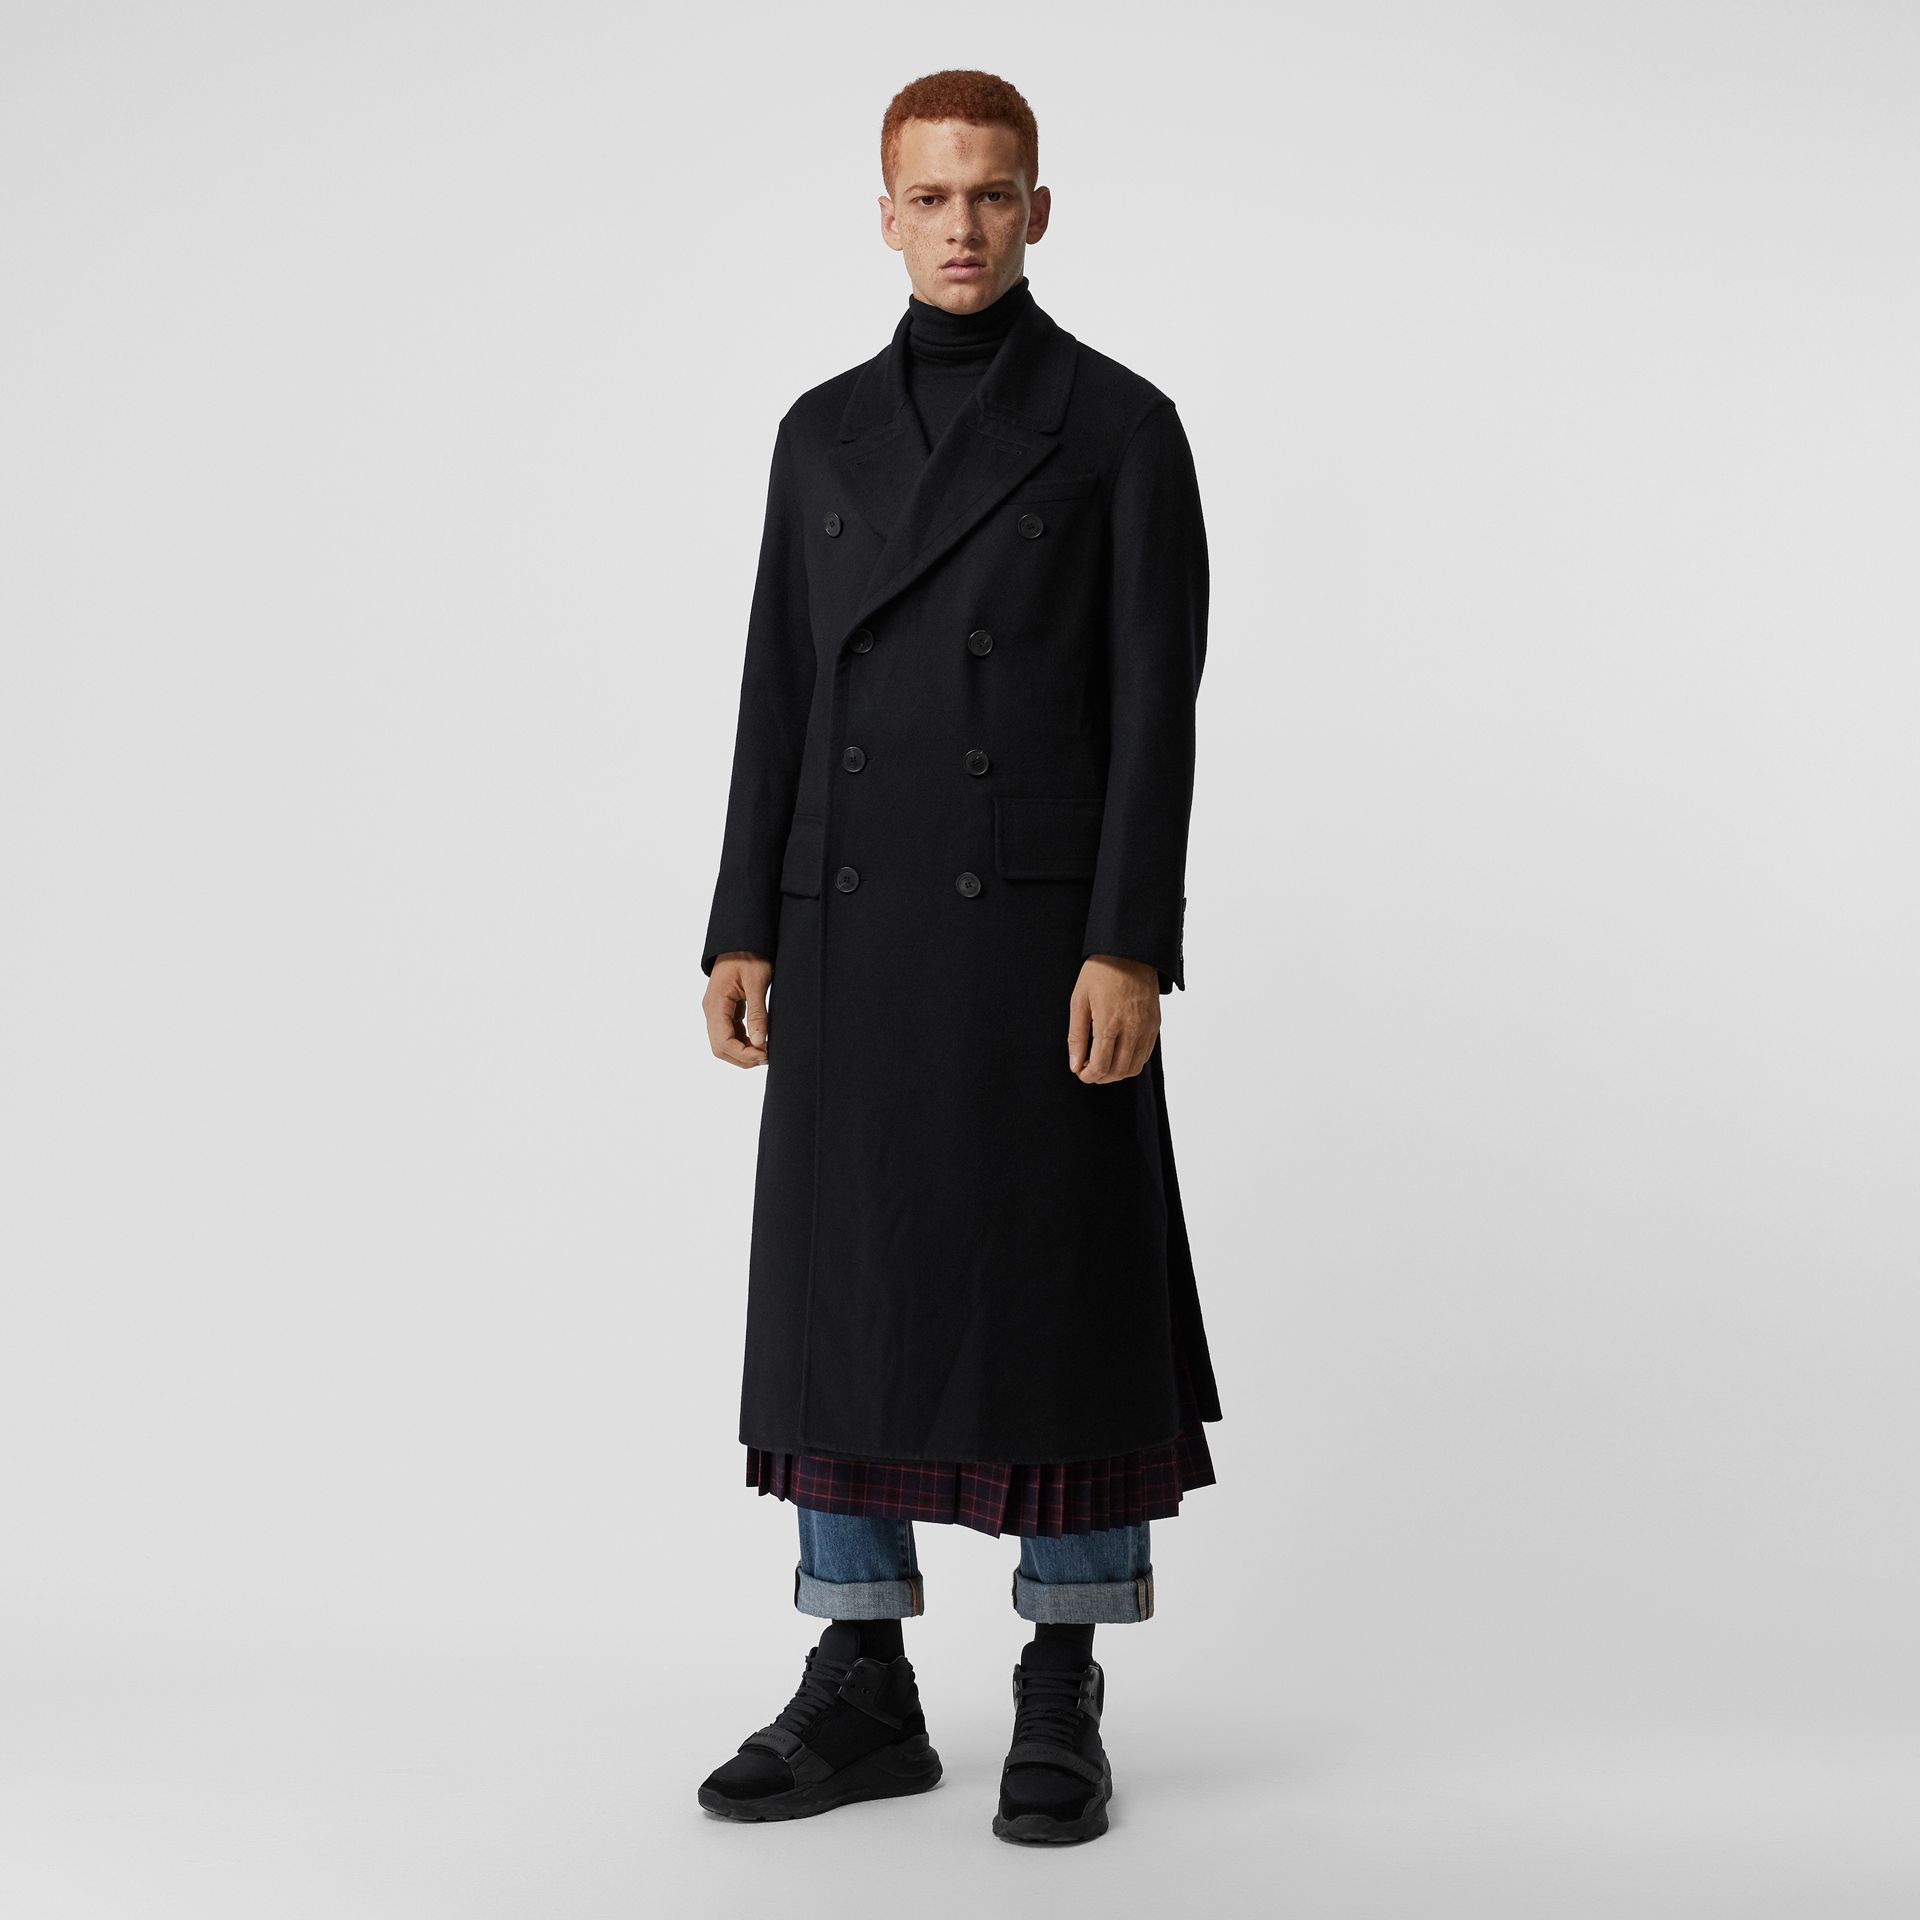 Manteau ajusté en cachemire double face (Noir) - Homme | Burberry - photo de la galerie 5